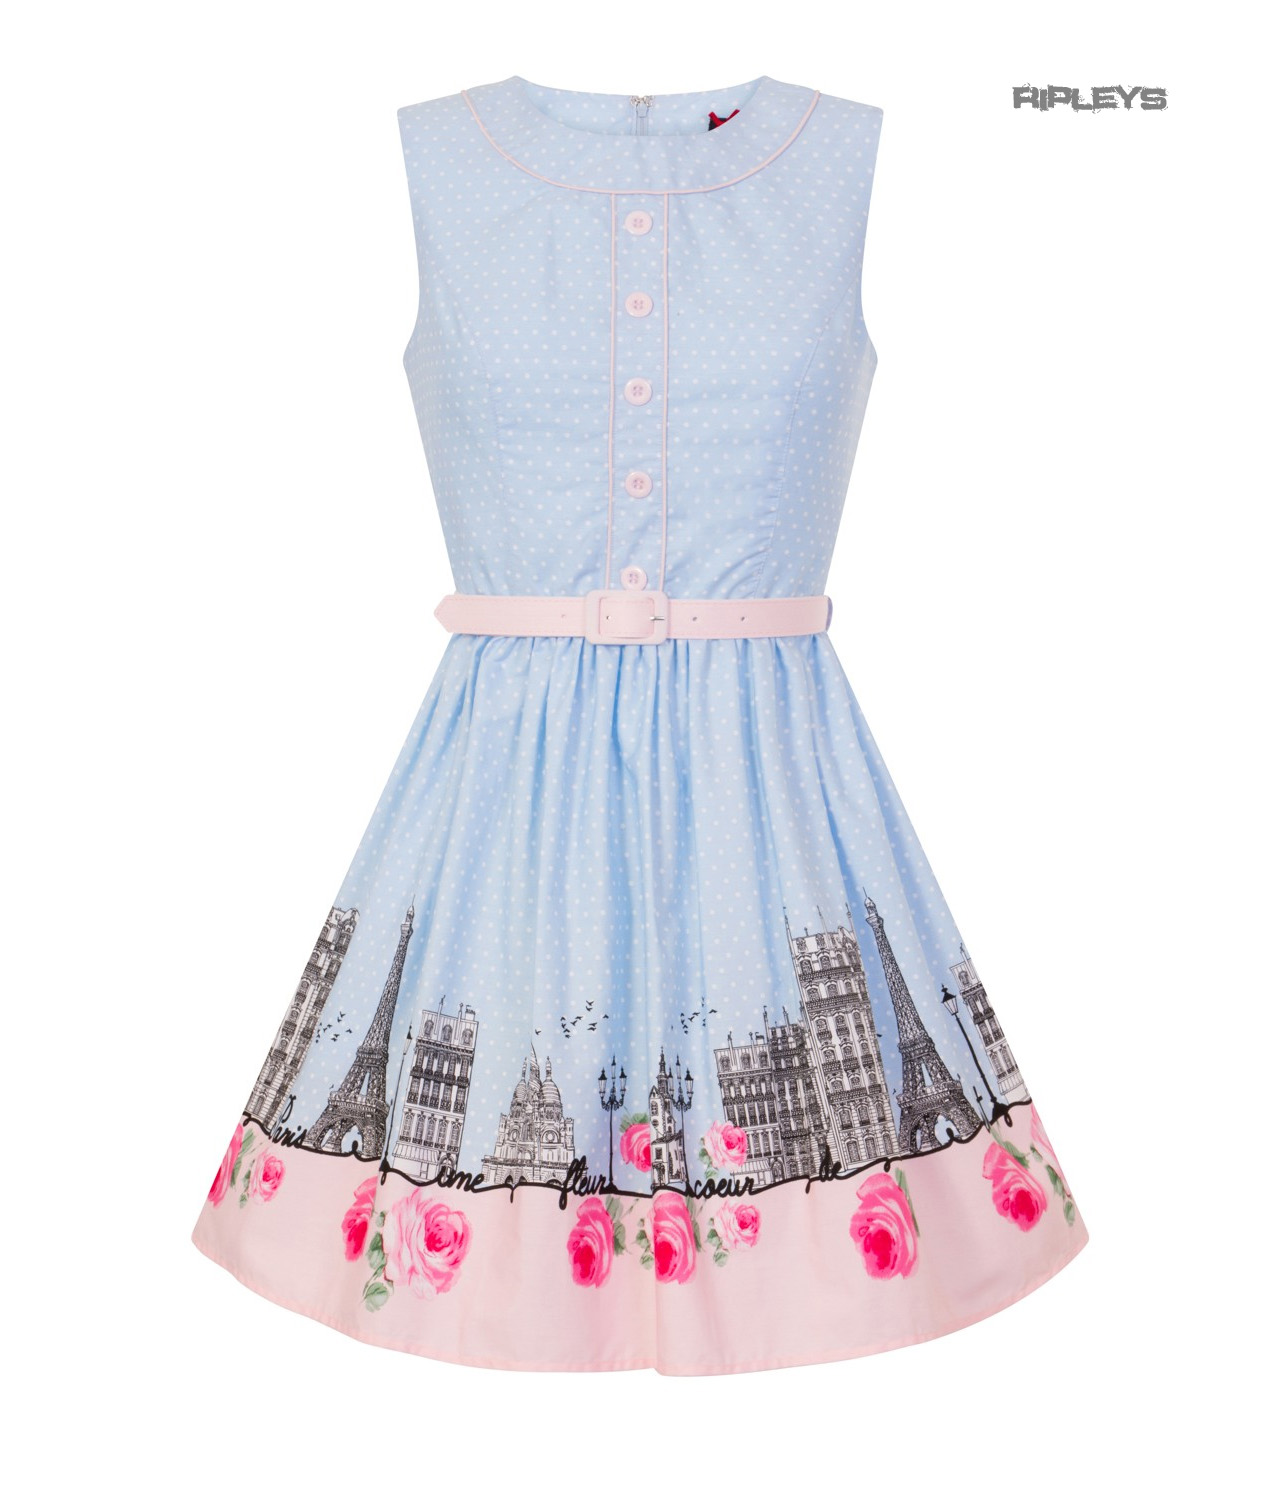 Hell-Bunny-50s-Vintage-Blue-Polka-Dot-PANAME-Mini-Dress-Paris-All-Sizes thumbnail 40